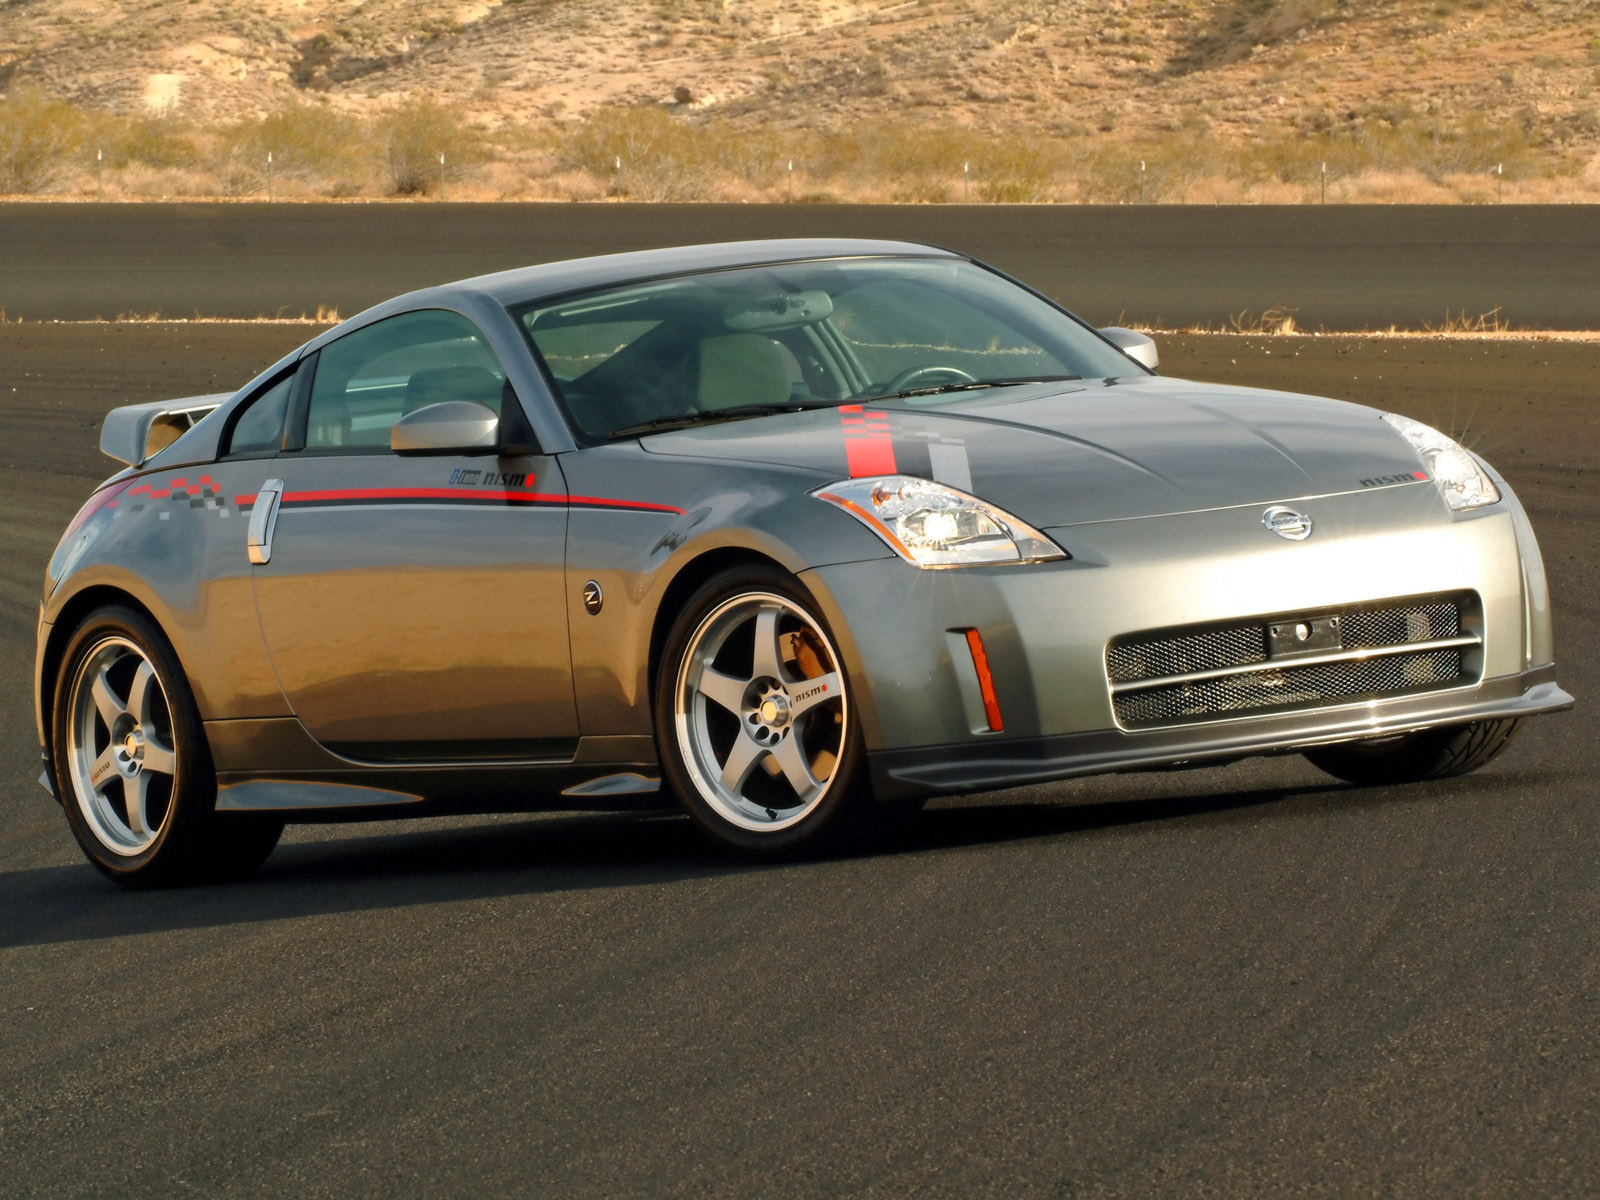 2003 nissan 350z roadster images photo 2004 nissan nismo 350z s 2003 nissan 350z roadster image vanachro Gallery